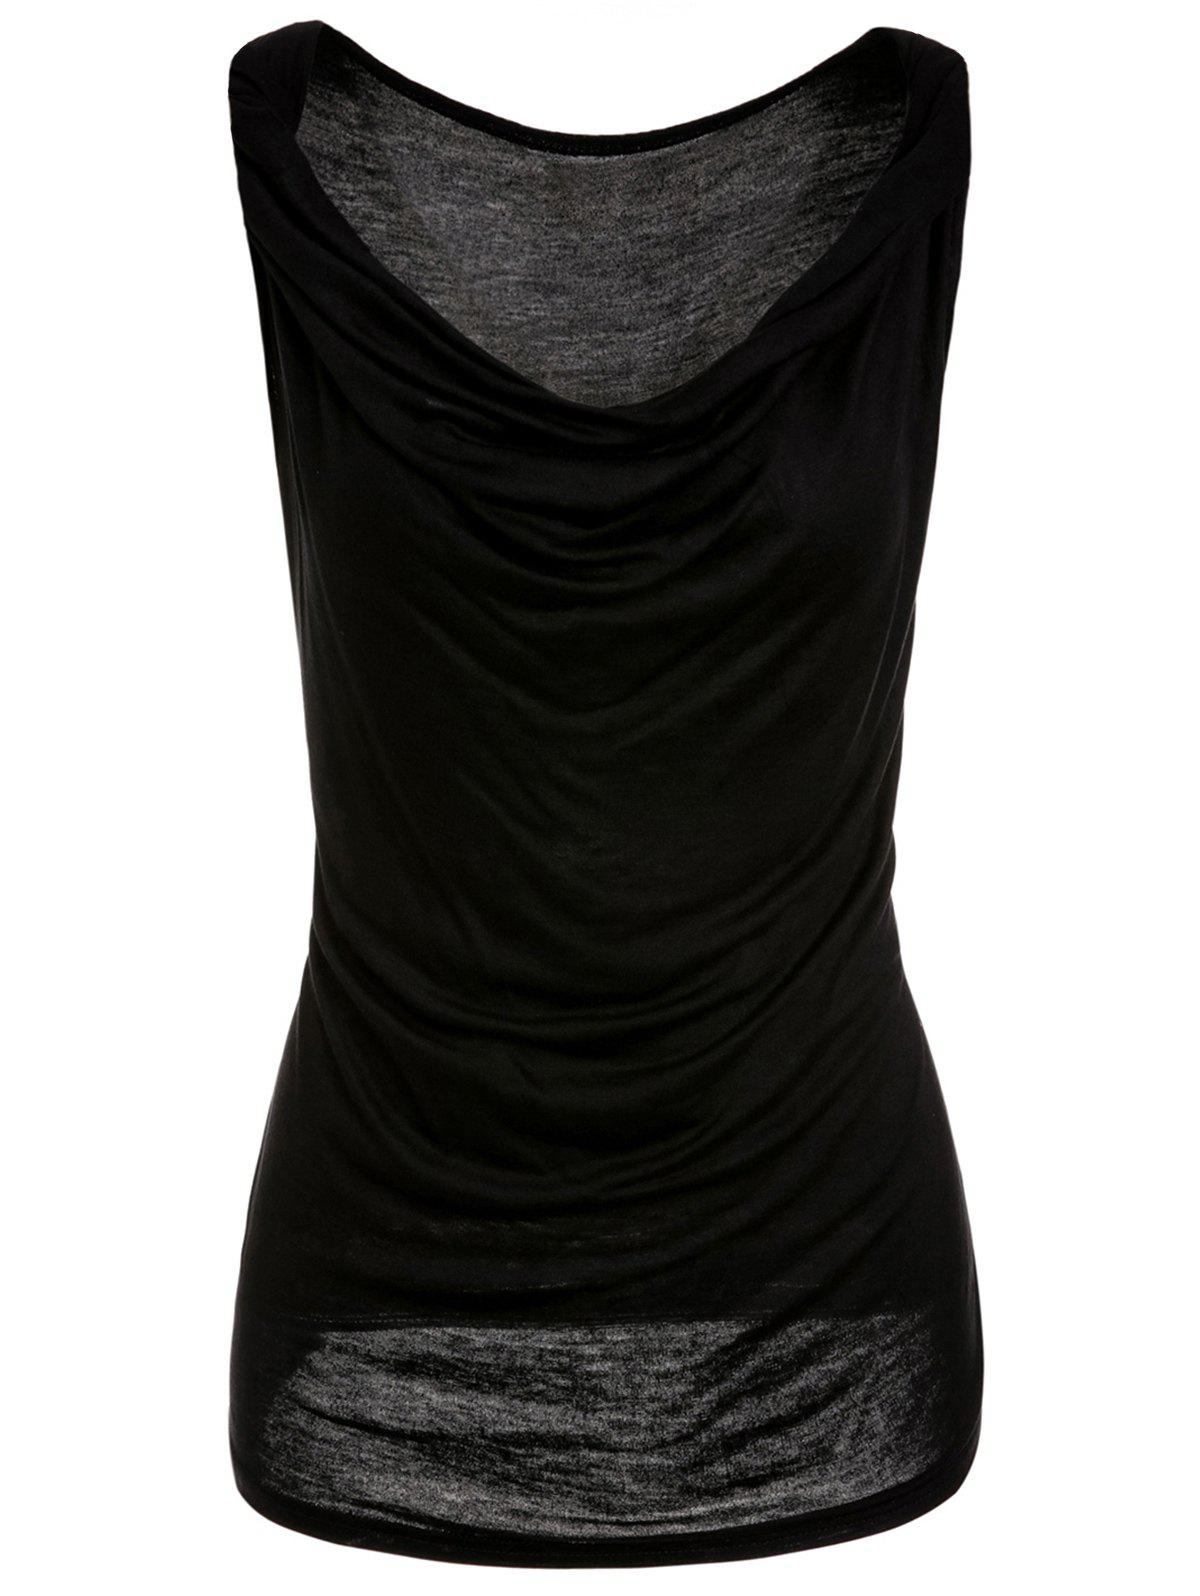 Fashionable Sleeveless Solid Color T-Shirt For Women - BLACK L